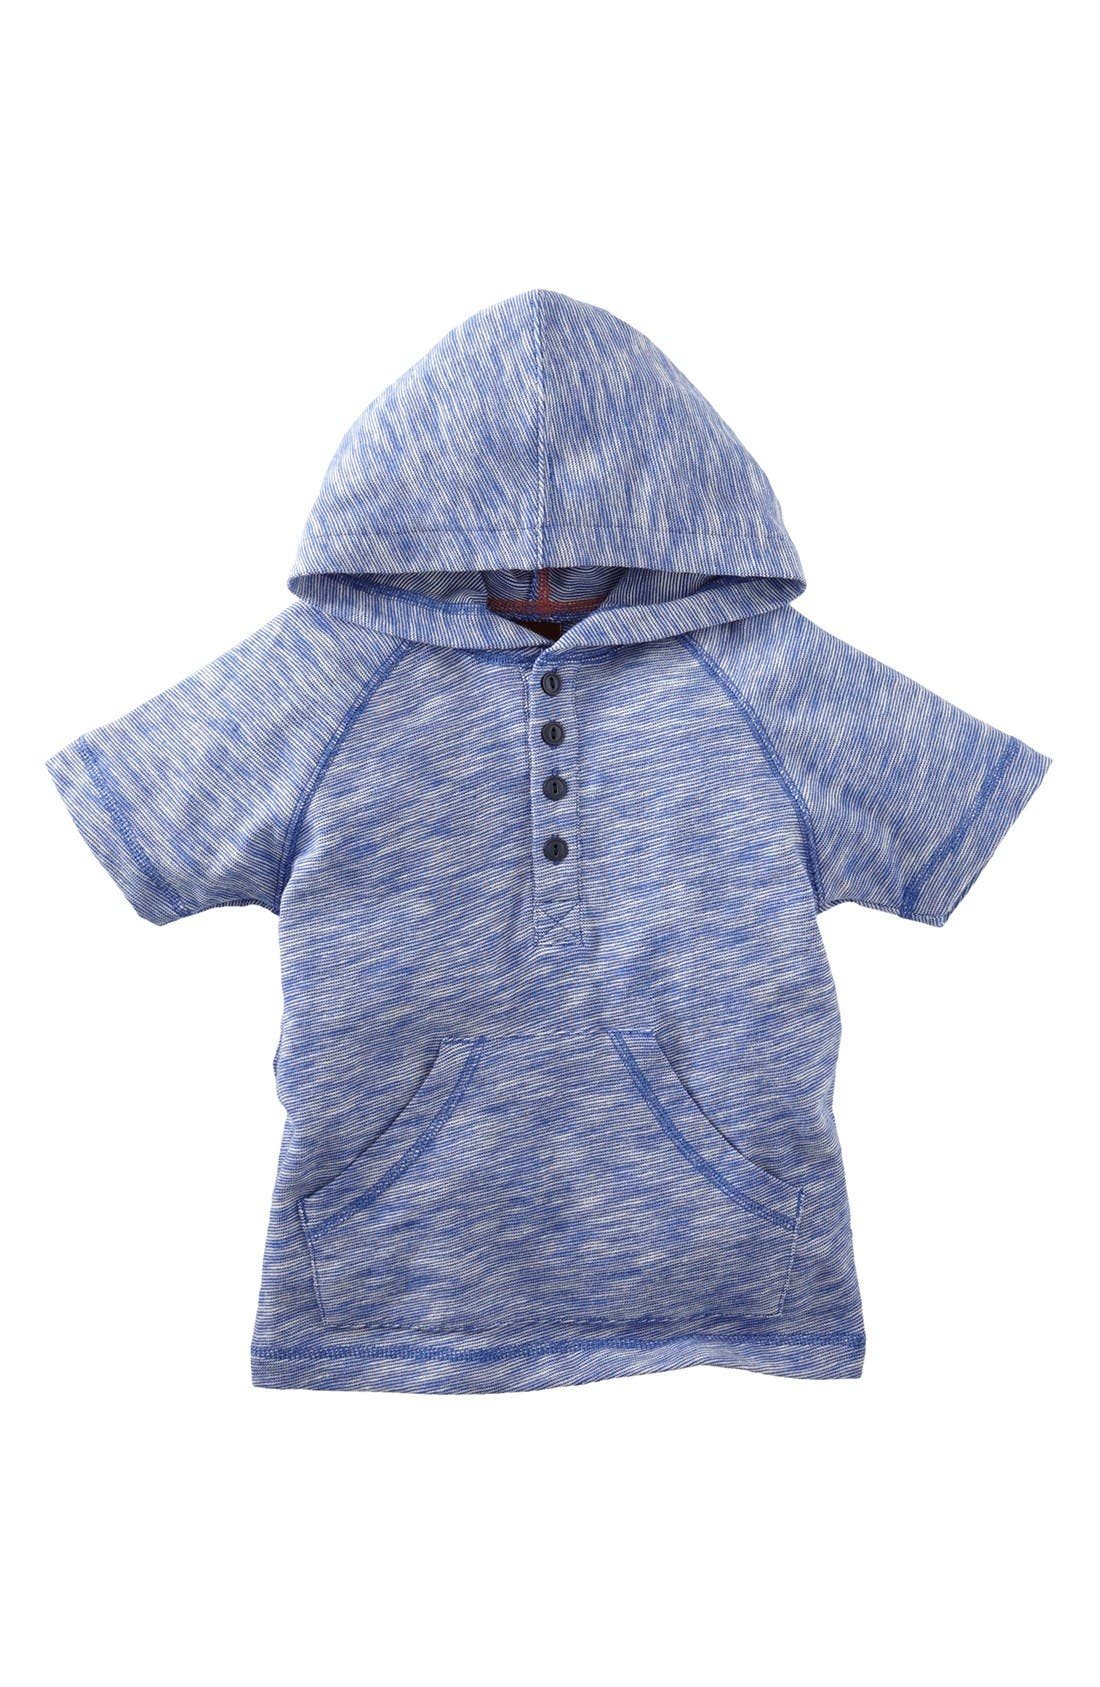 Alternate Image 1 Selected - Tea Collection 'End-on-End' Short Sleeve Hoodie (Toddler Boys)